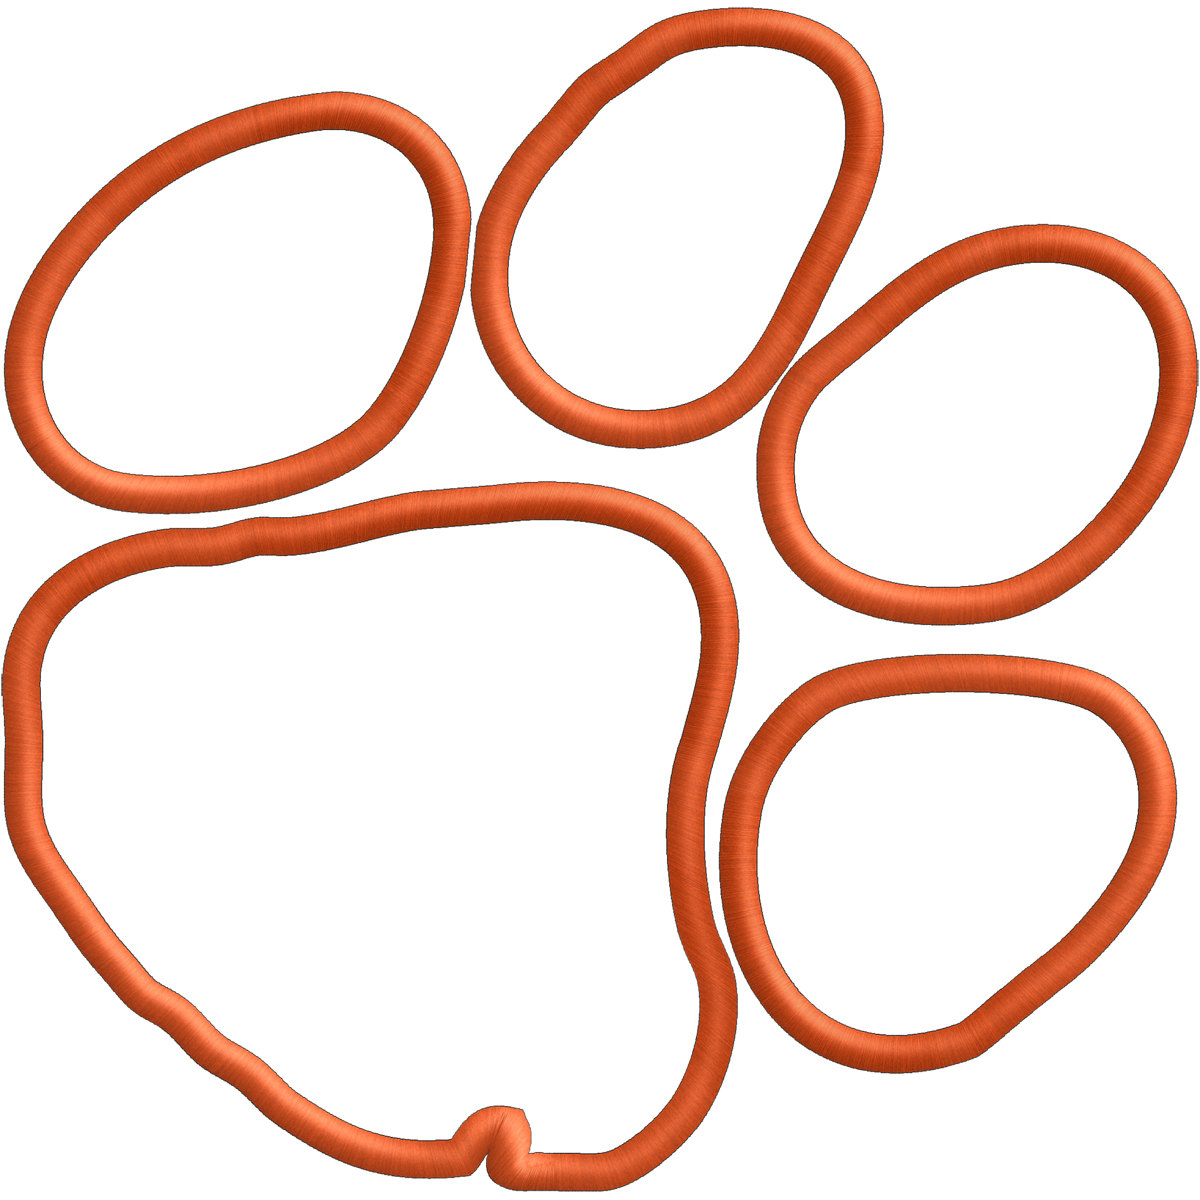 Clemson logo clipart graphic freeuse library Clemson Logo Paw Vector Tiger Embroidery Or clipart free image graphic freeuse library